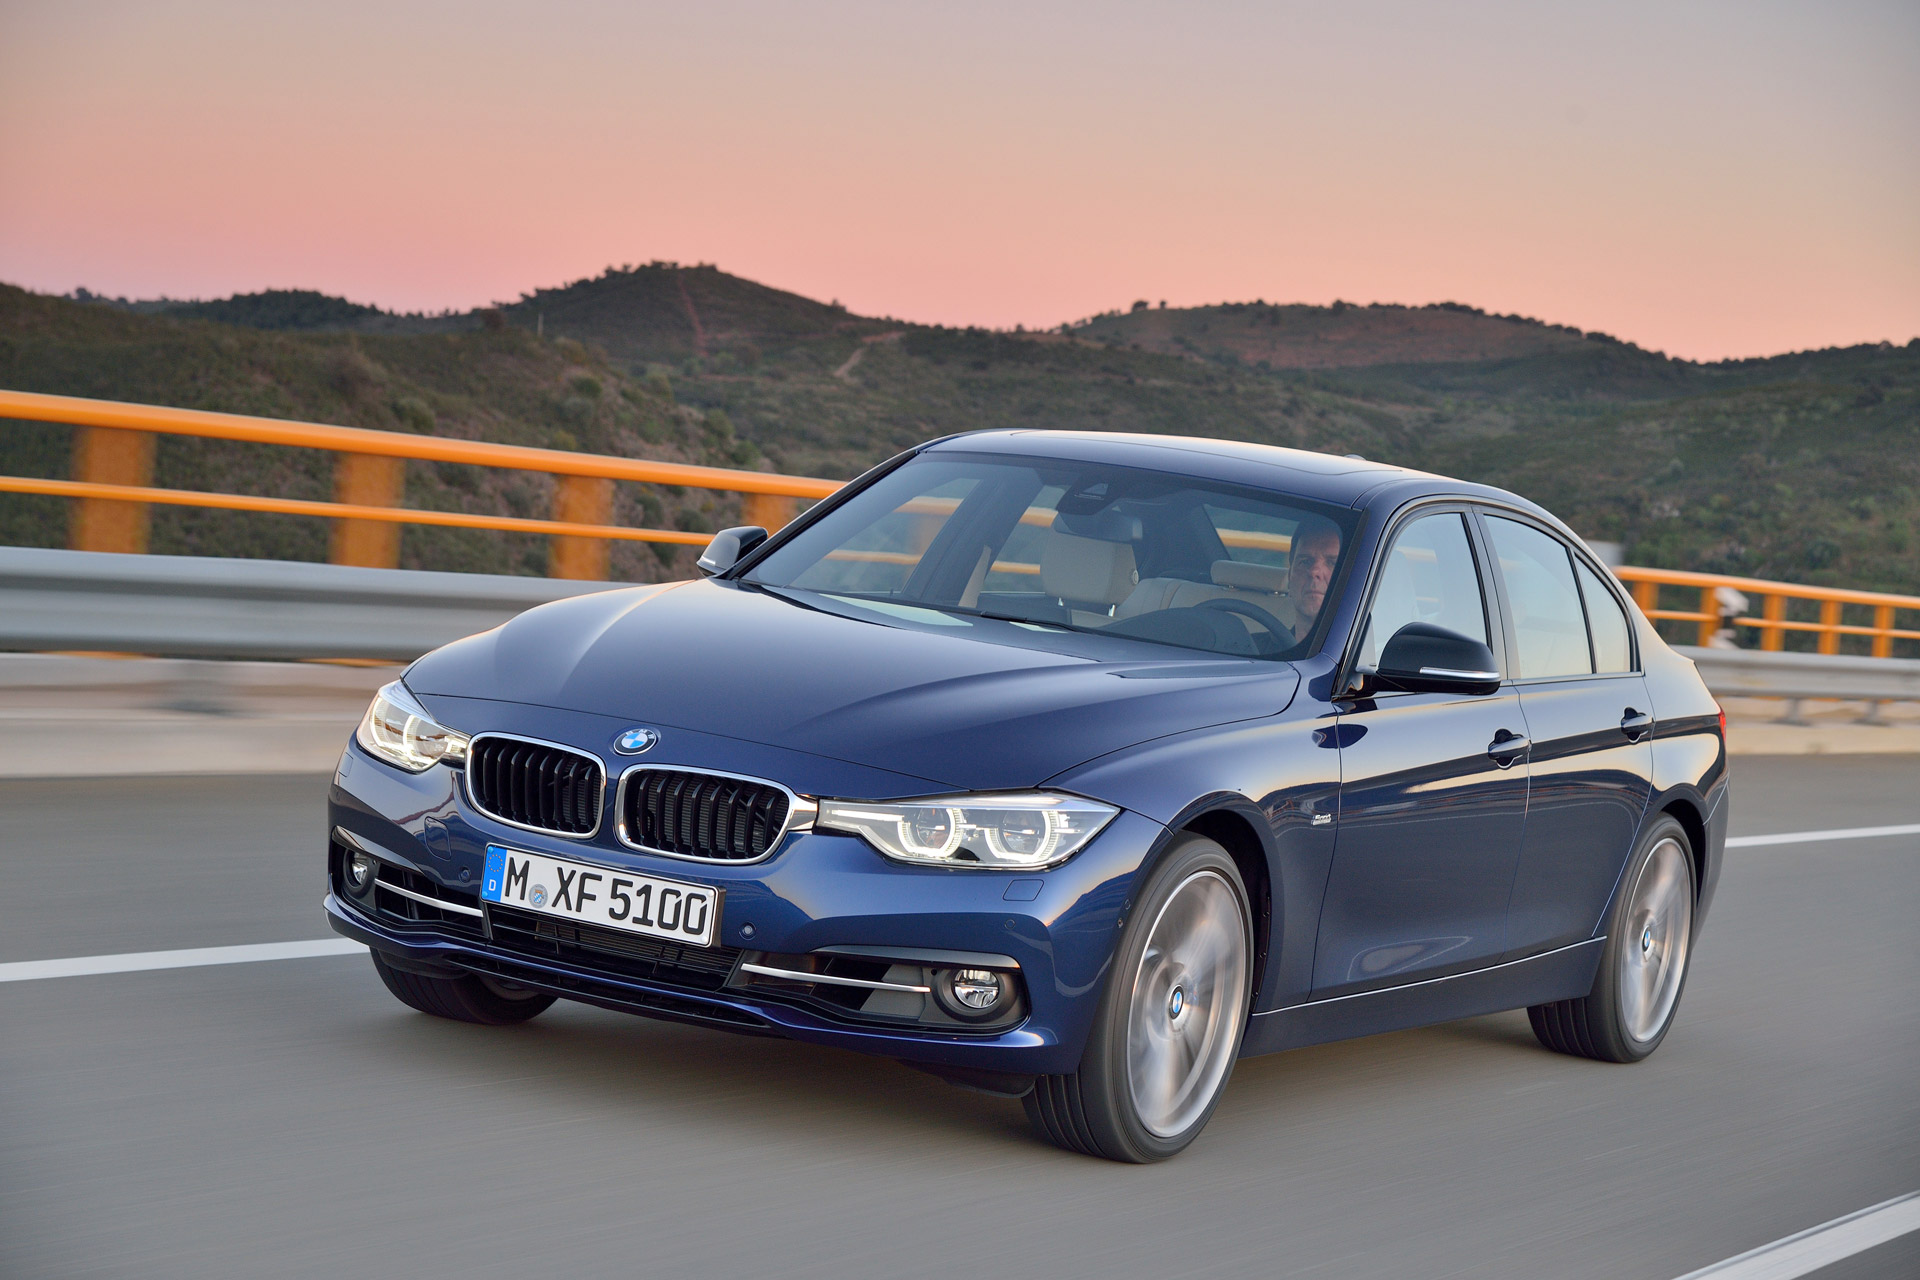 Car models com 2012 bmw 3 series - Bmw 3 Series 2012 Exterior Front Side View